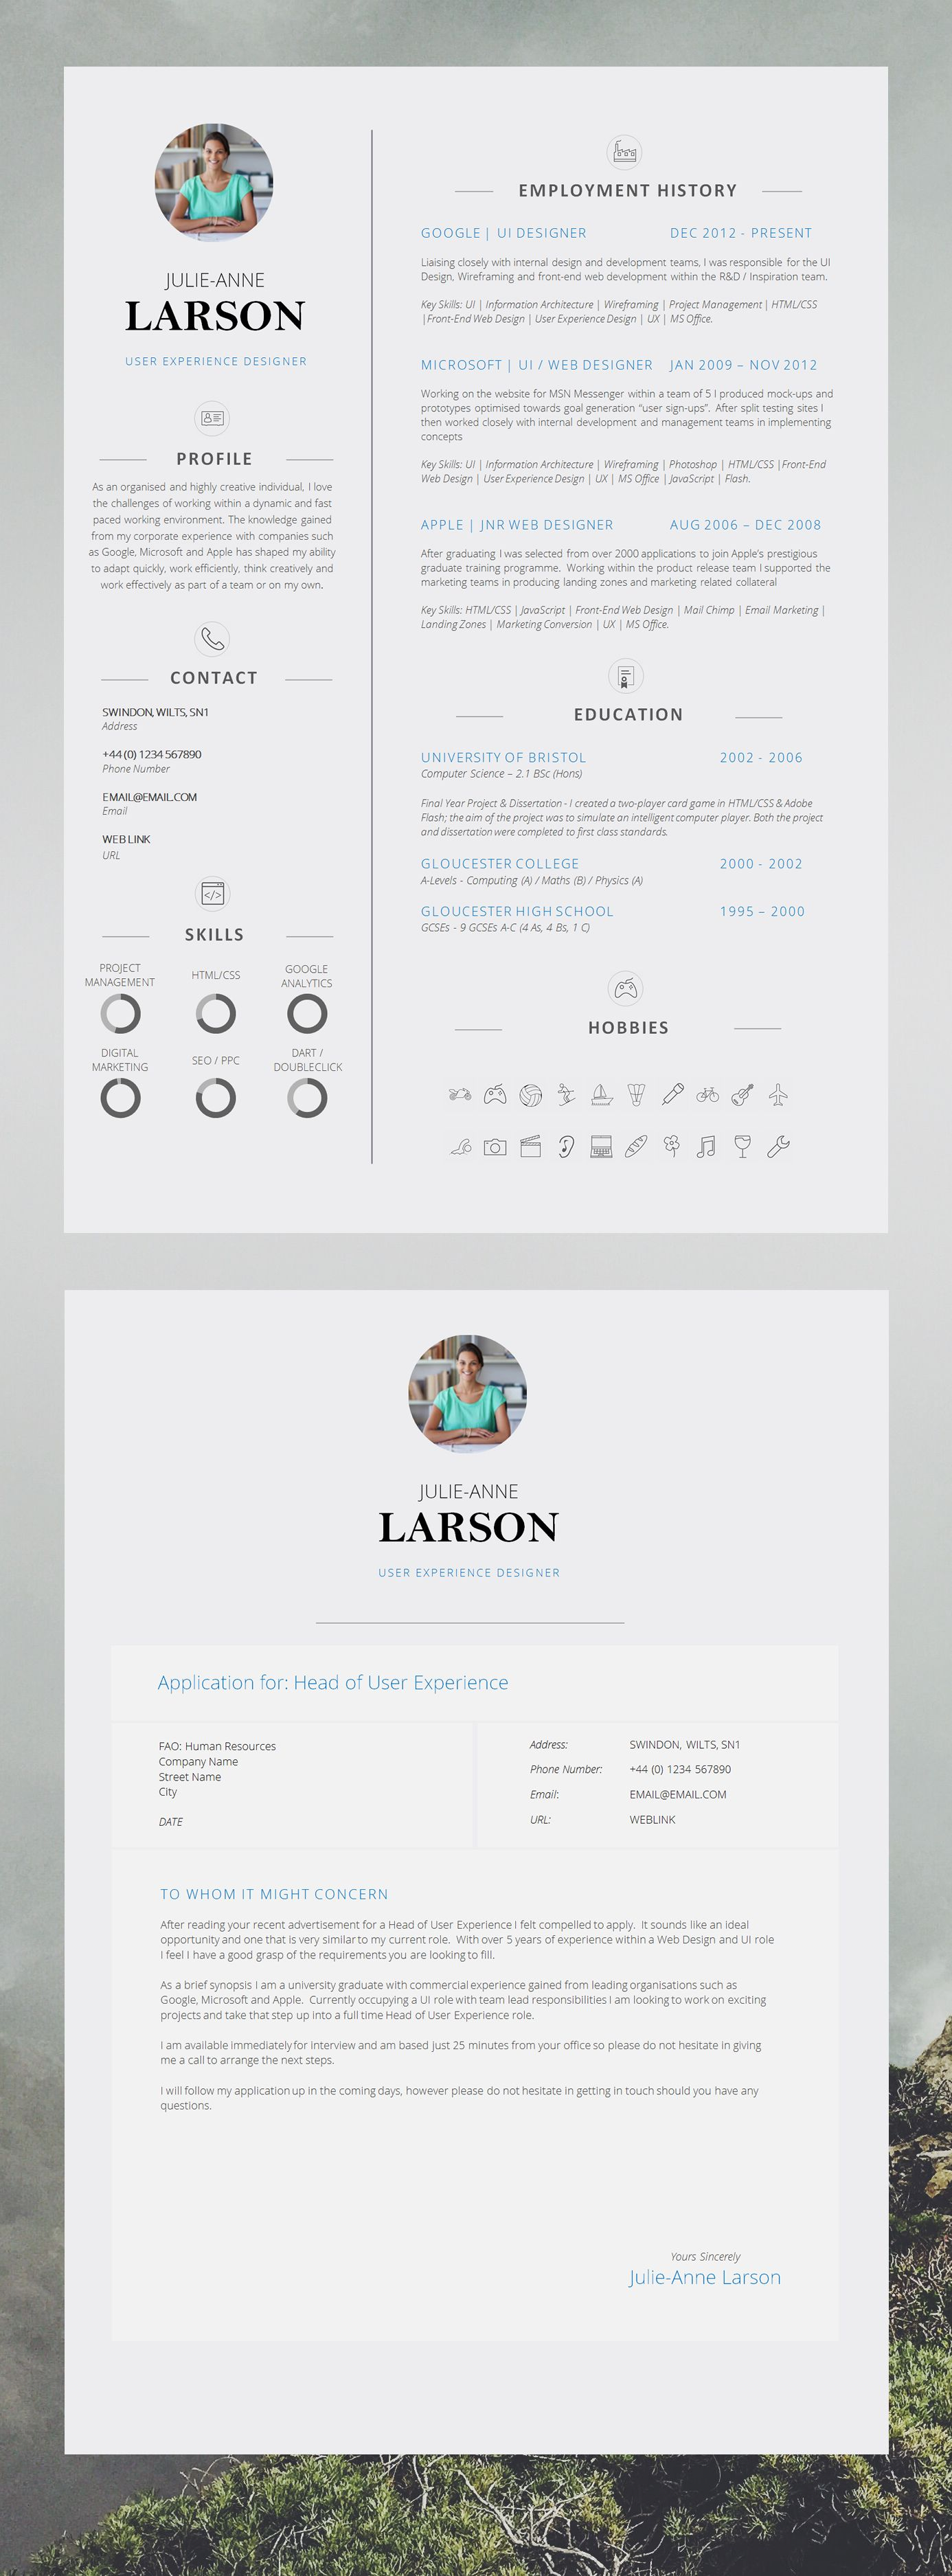 Download for FREE this creative printable Resume Templates. You ...